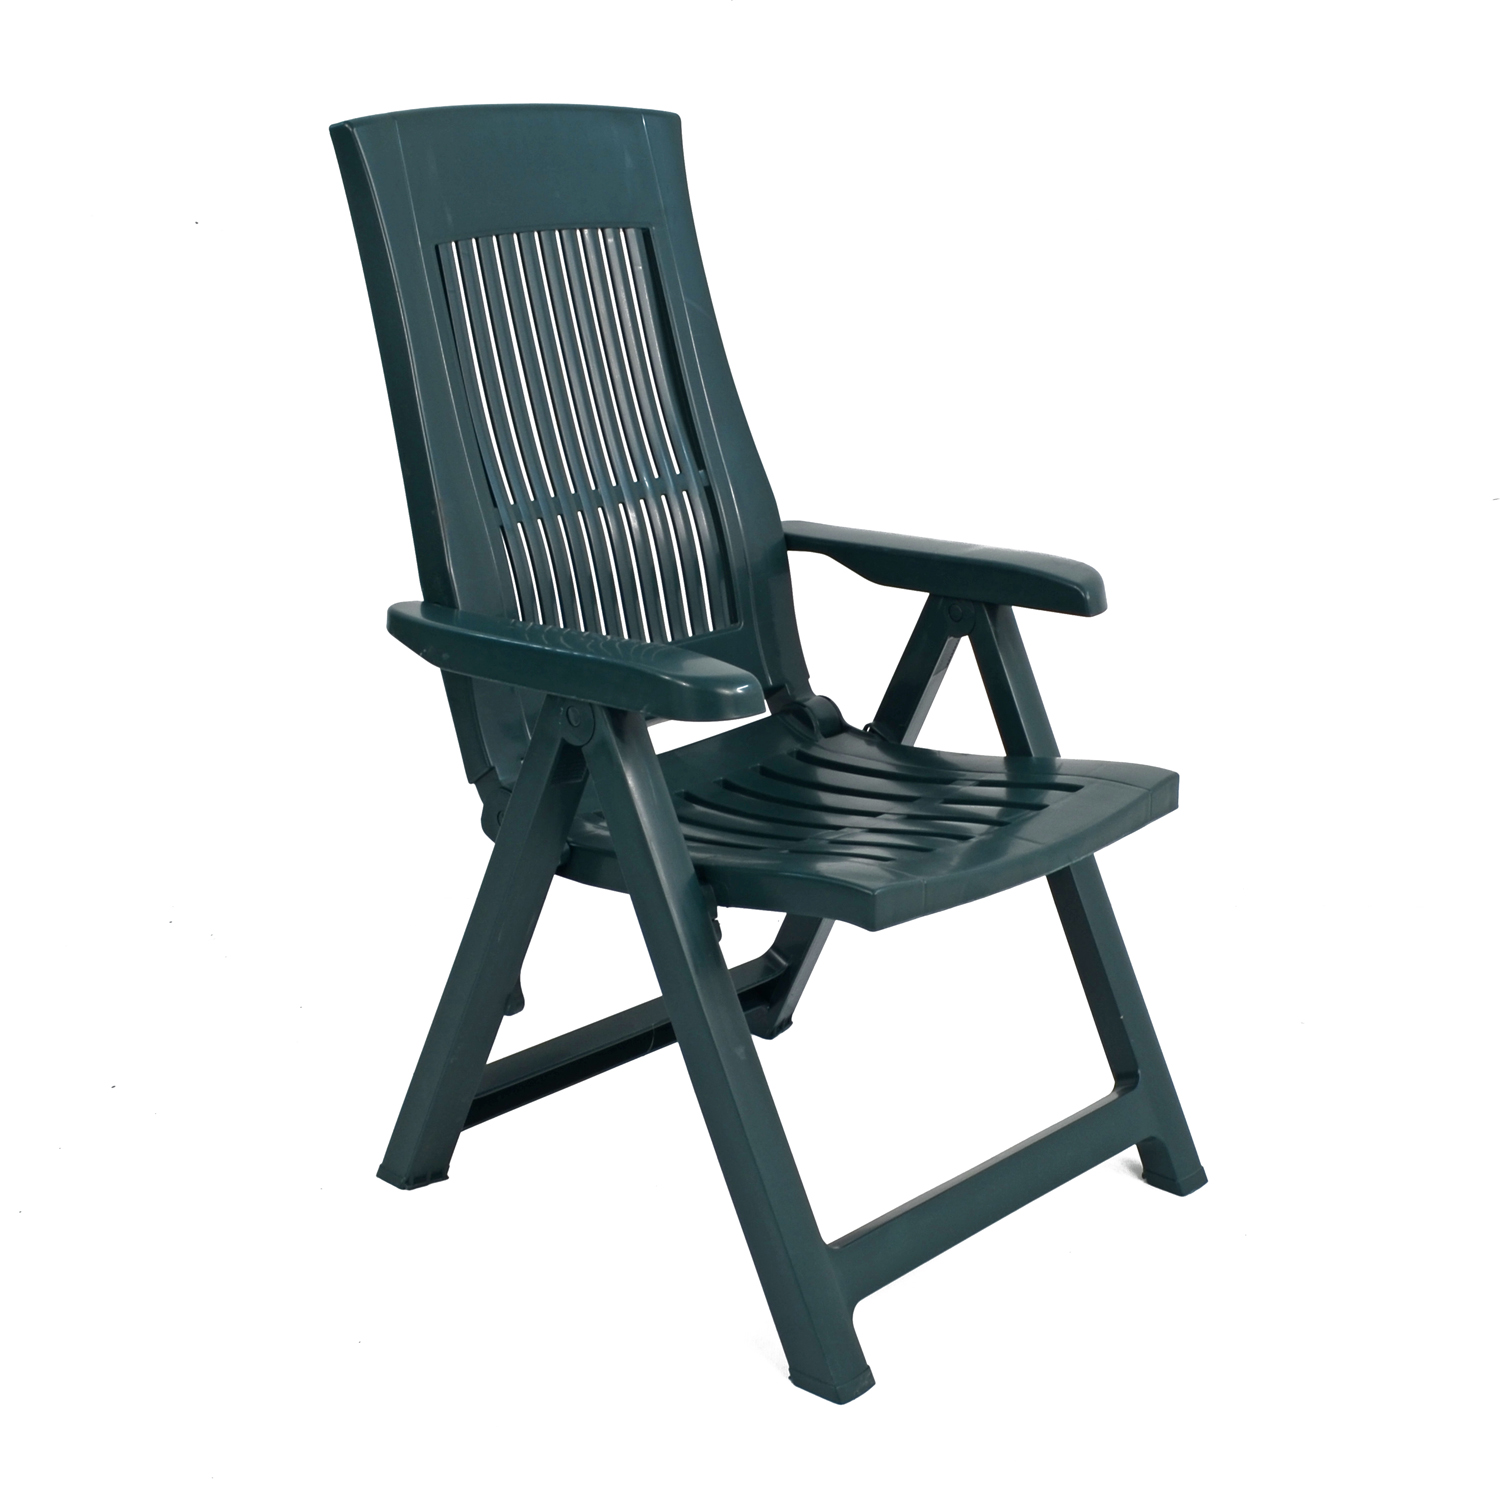 Palermo recliner chair in green